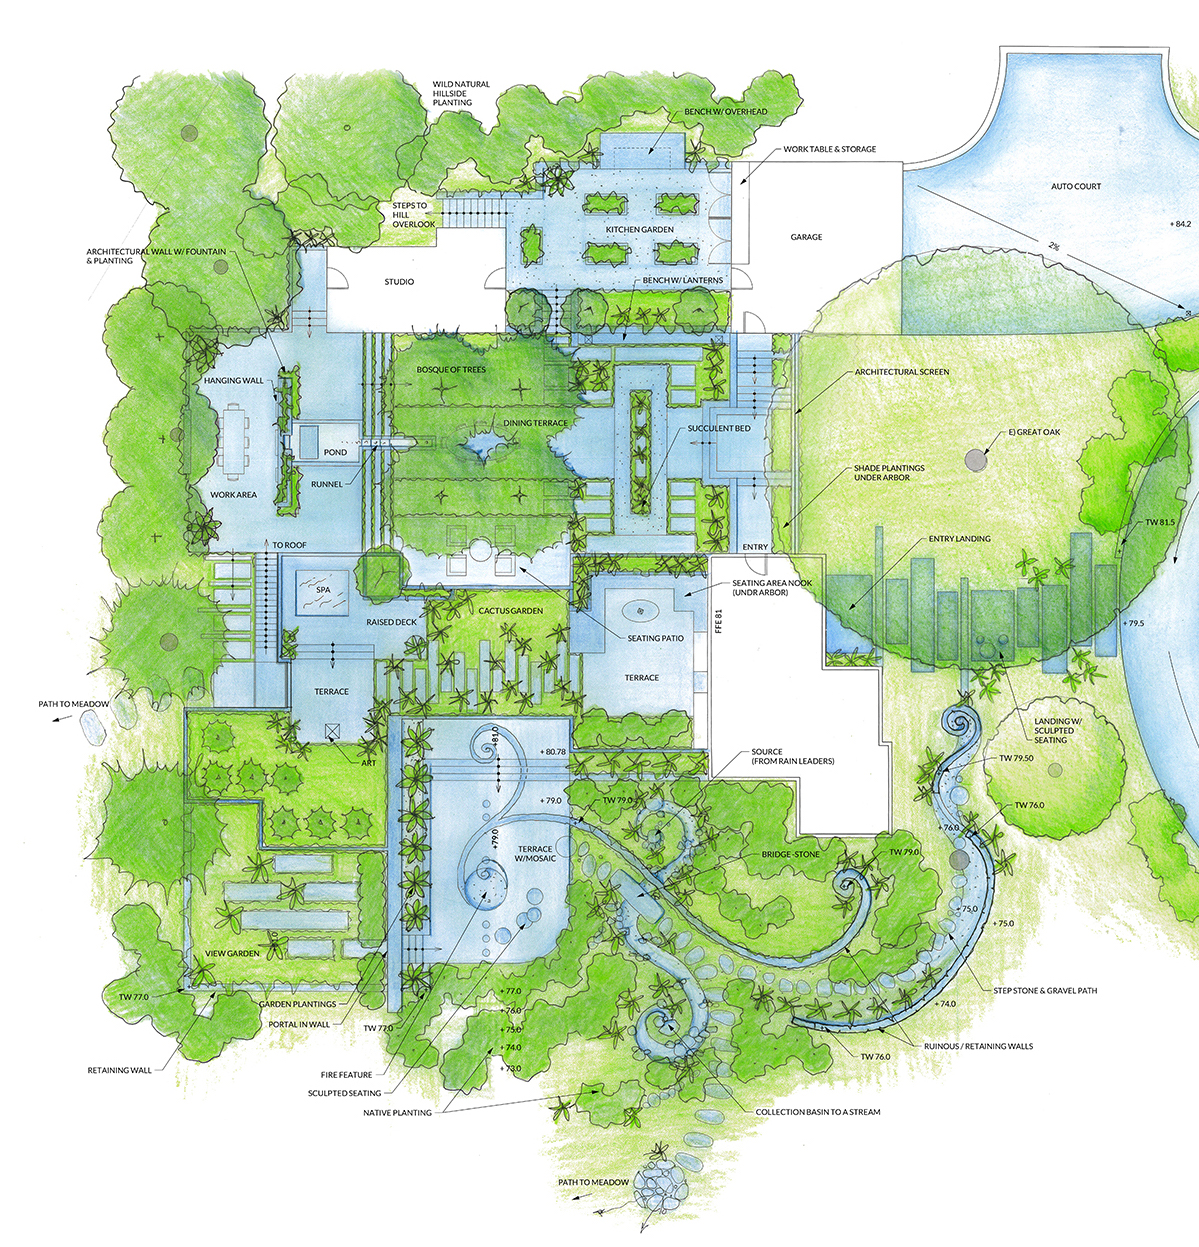 Conceptual Master Plan by Arterra Landscape Architects